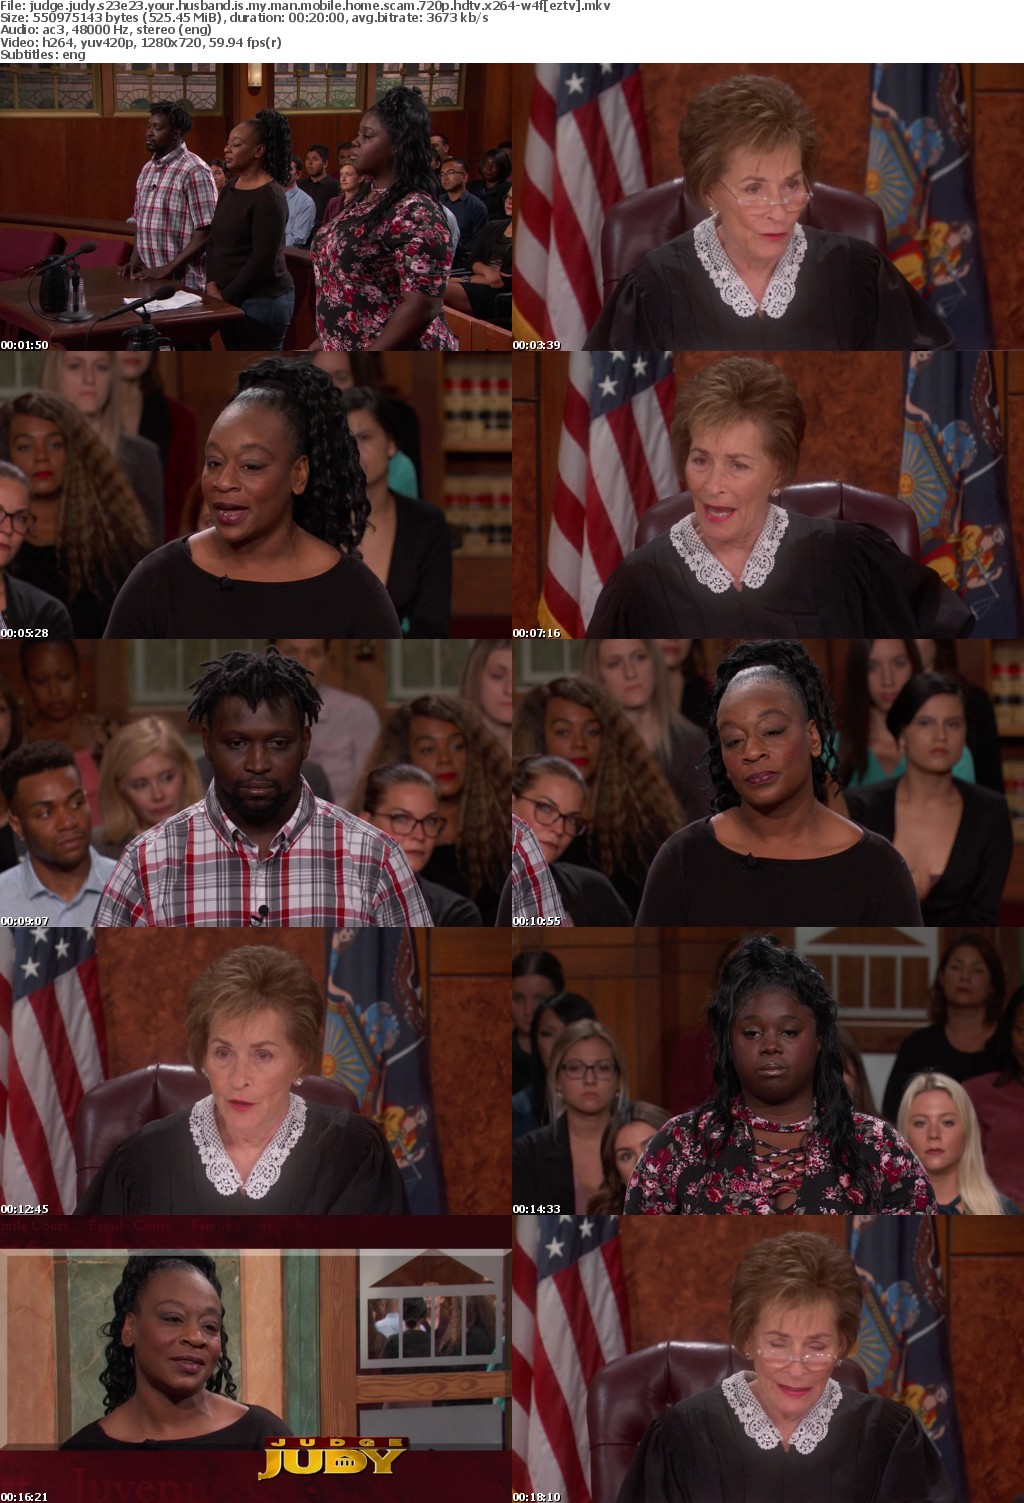 Judge Judy S23E23 Your Husband Is My Man Mobile Home Scam 720p HDTV x264-W4F